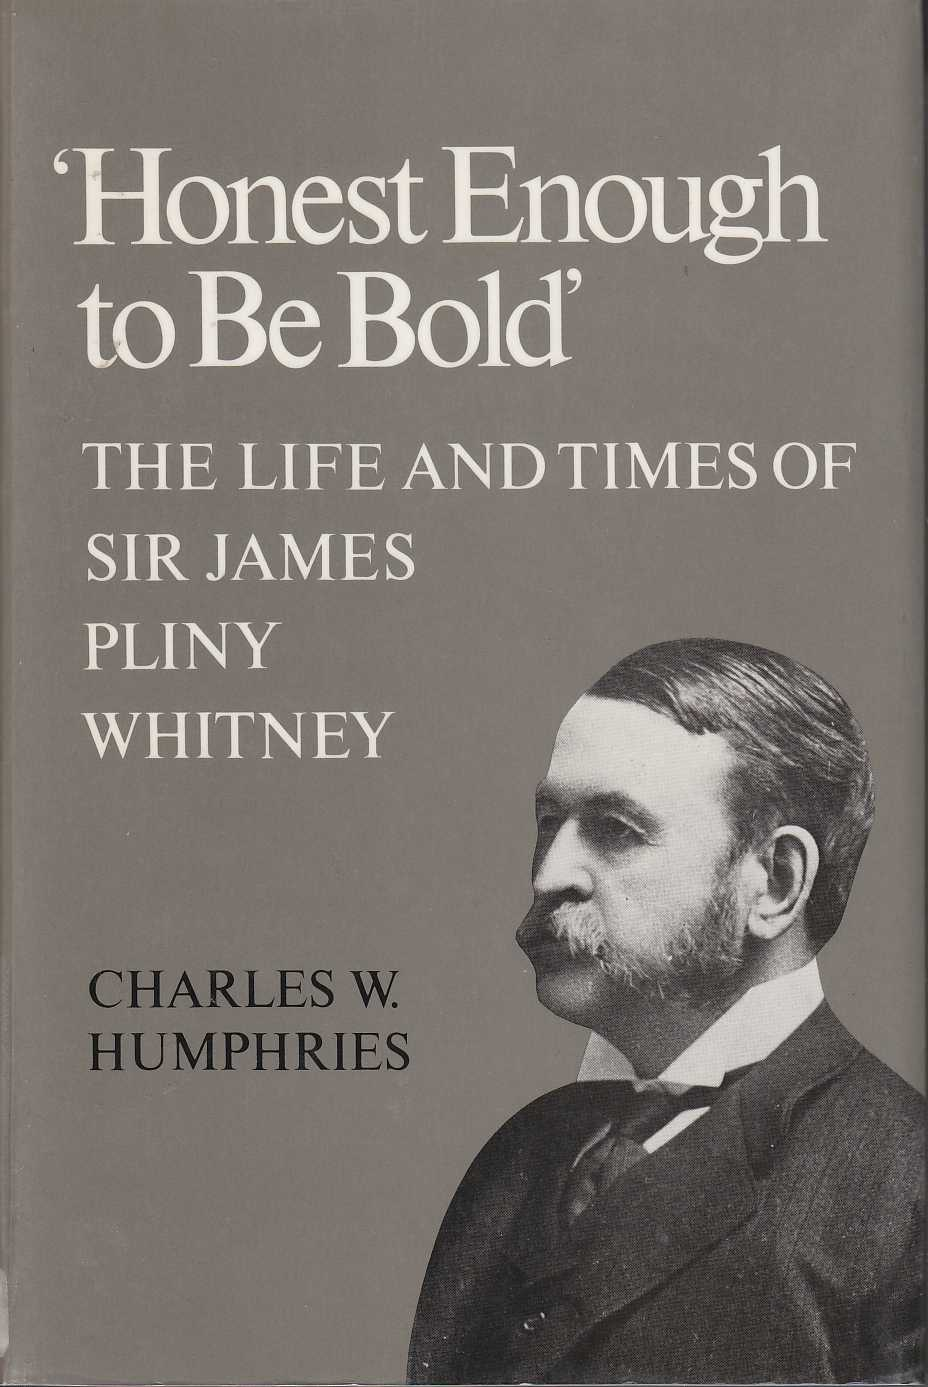 Image for Honest Enough to be Bold The Life and Times of Sir James Pliny